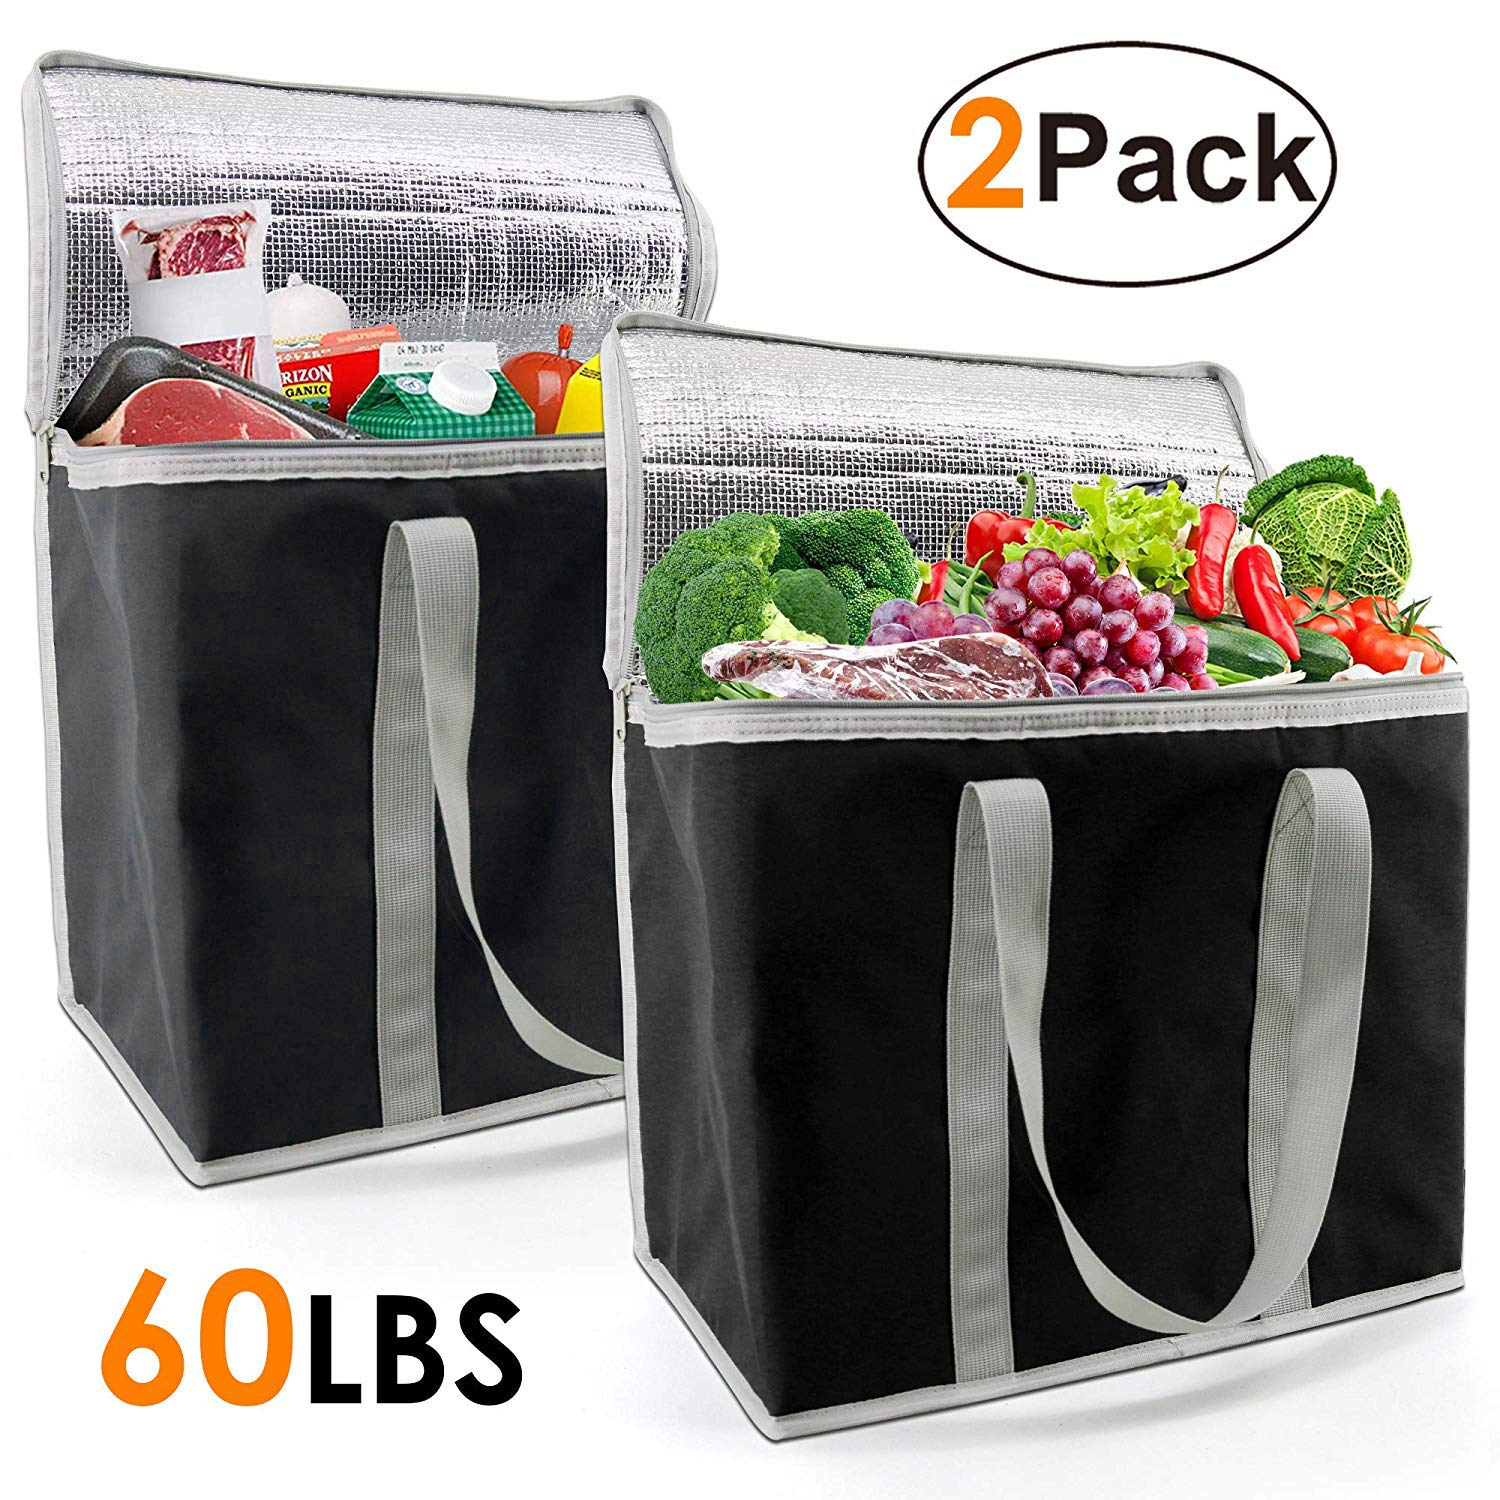 Insulated-Grocery-Bags-Shopping-Cooler-Thermal-Tote 2 Pack for Hot Cold Frozen Food Transport X-Large 60LBS Reusable and Durable with Zipper Top Long Handles Collapsible Black by BeeGreen